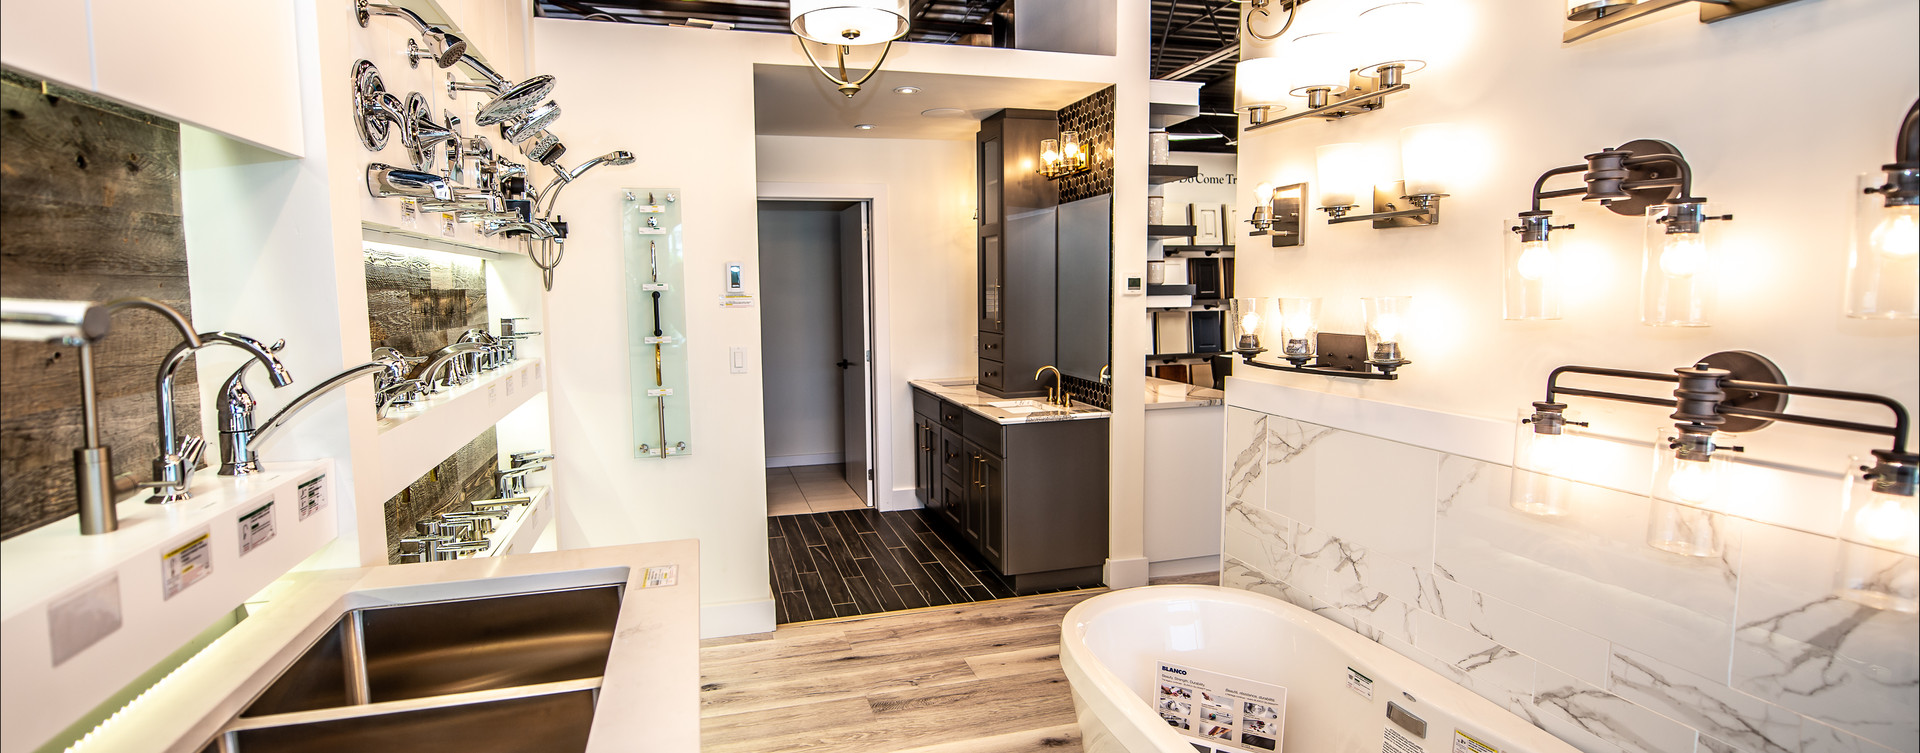 Modern bathroom design with bathroom finishes displayed on wall.